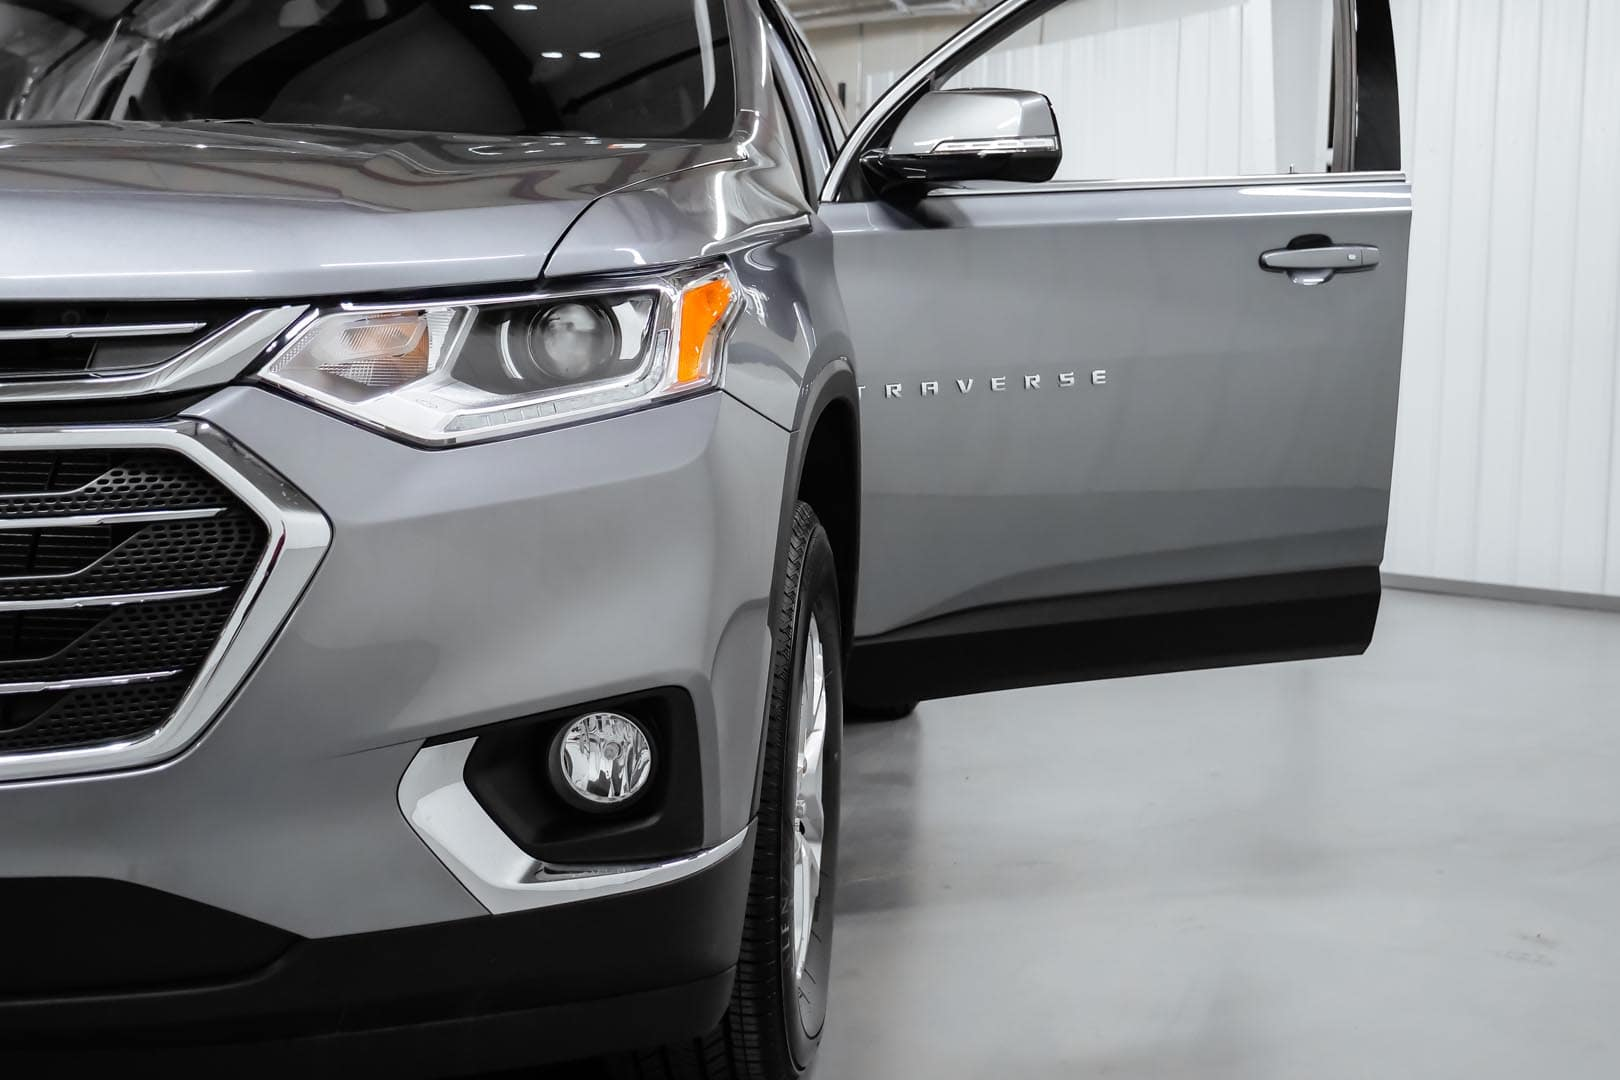 Silver Chevrolet Traverse with open driver side door